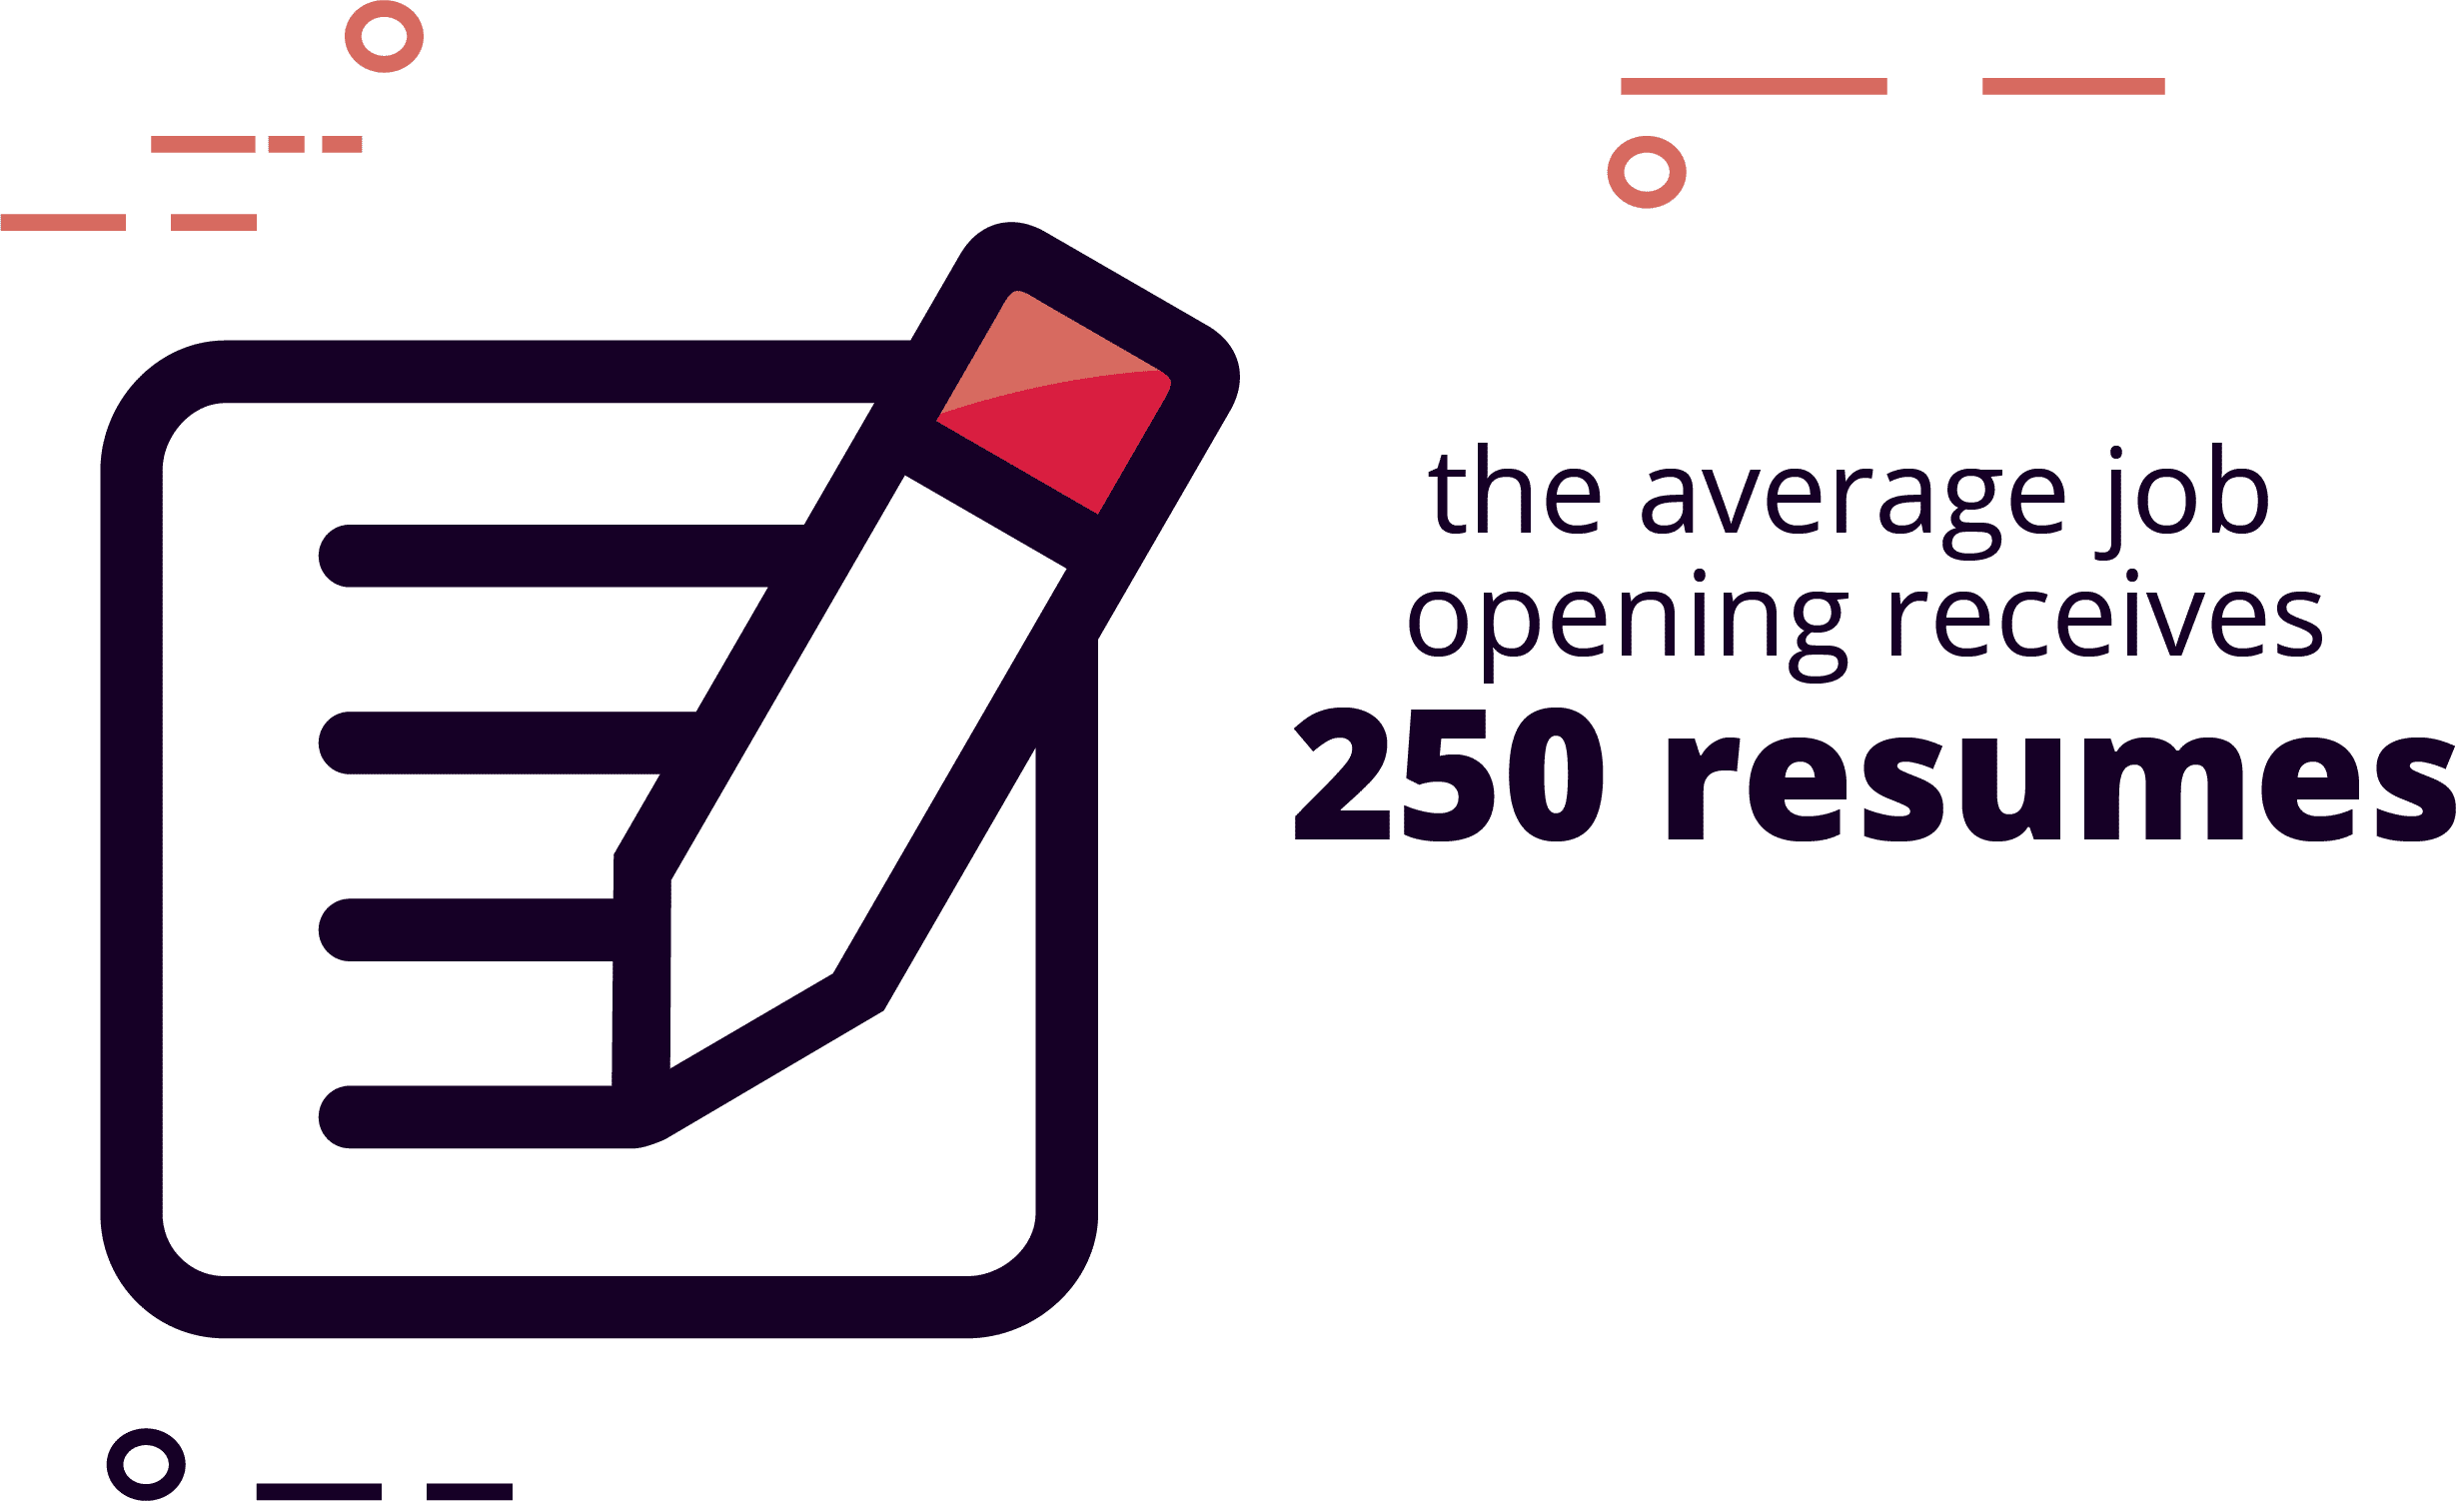 Any given job posting receives an average of 250 resumes